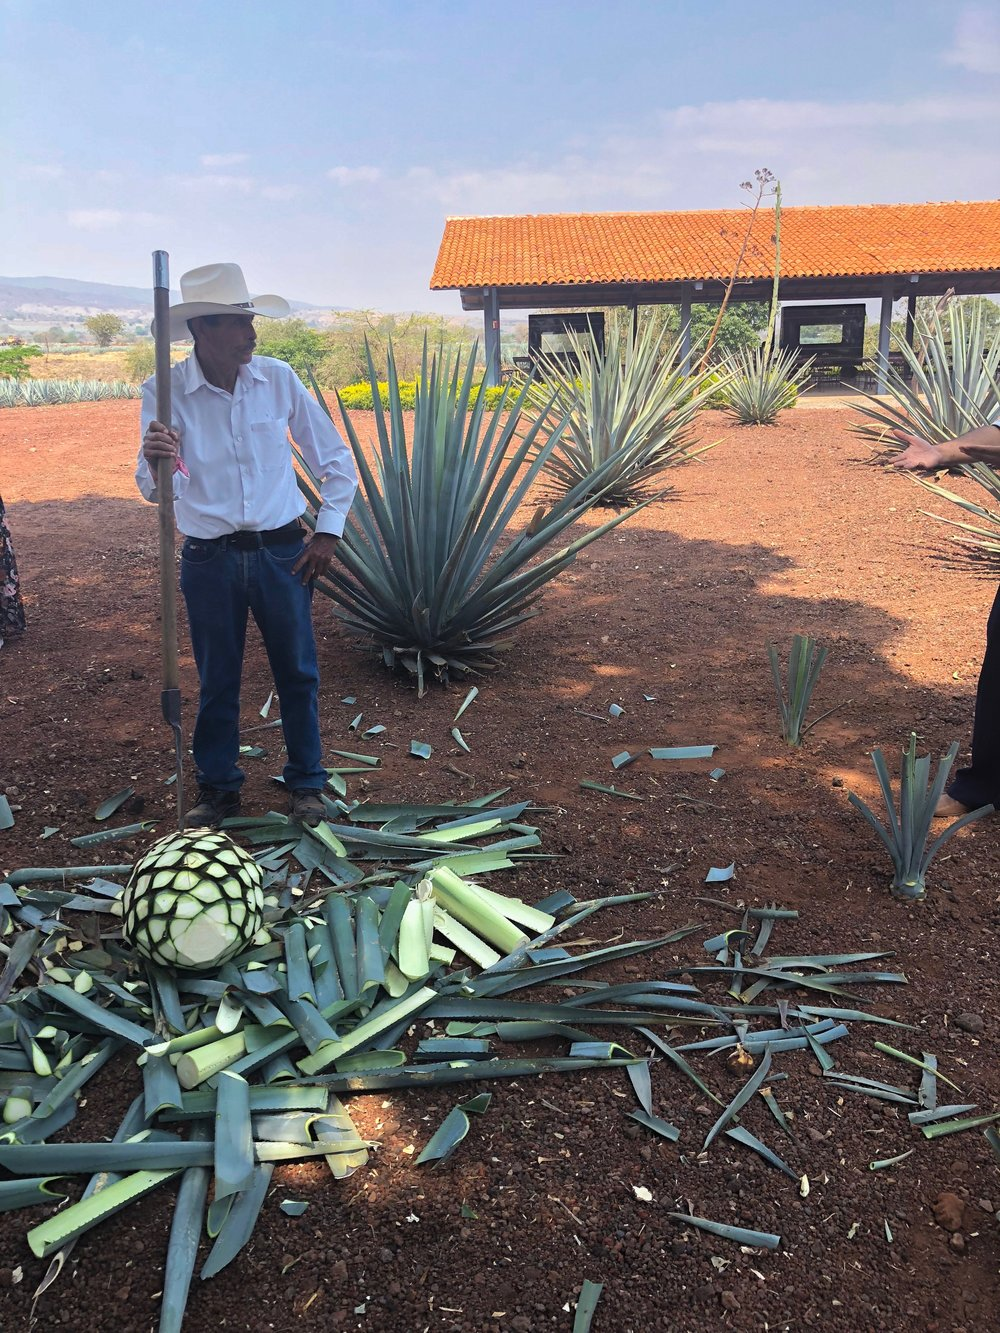 A  jimador  is a type of Mexican farmer who harvests agave plants, which are harvested primarily for the production of mezcal, sotol and tequila. Jimadores take pride in their profession, which is often passed down for many generations within families.